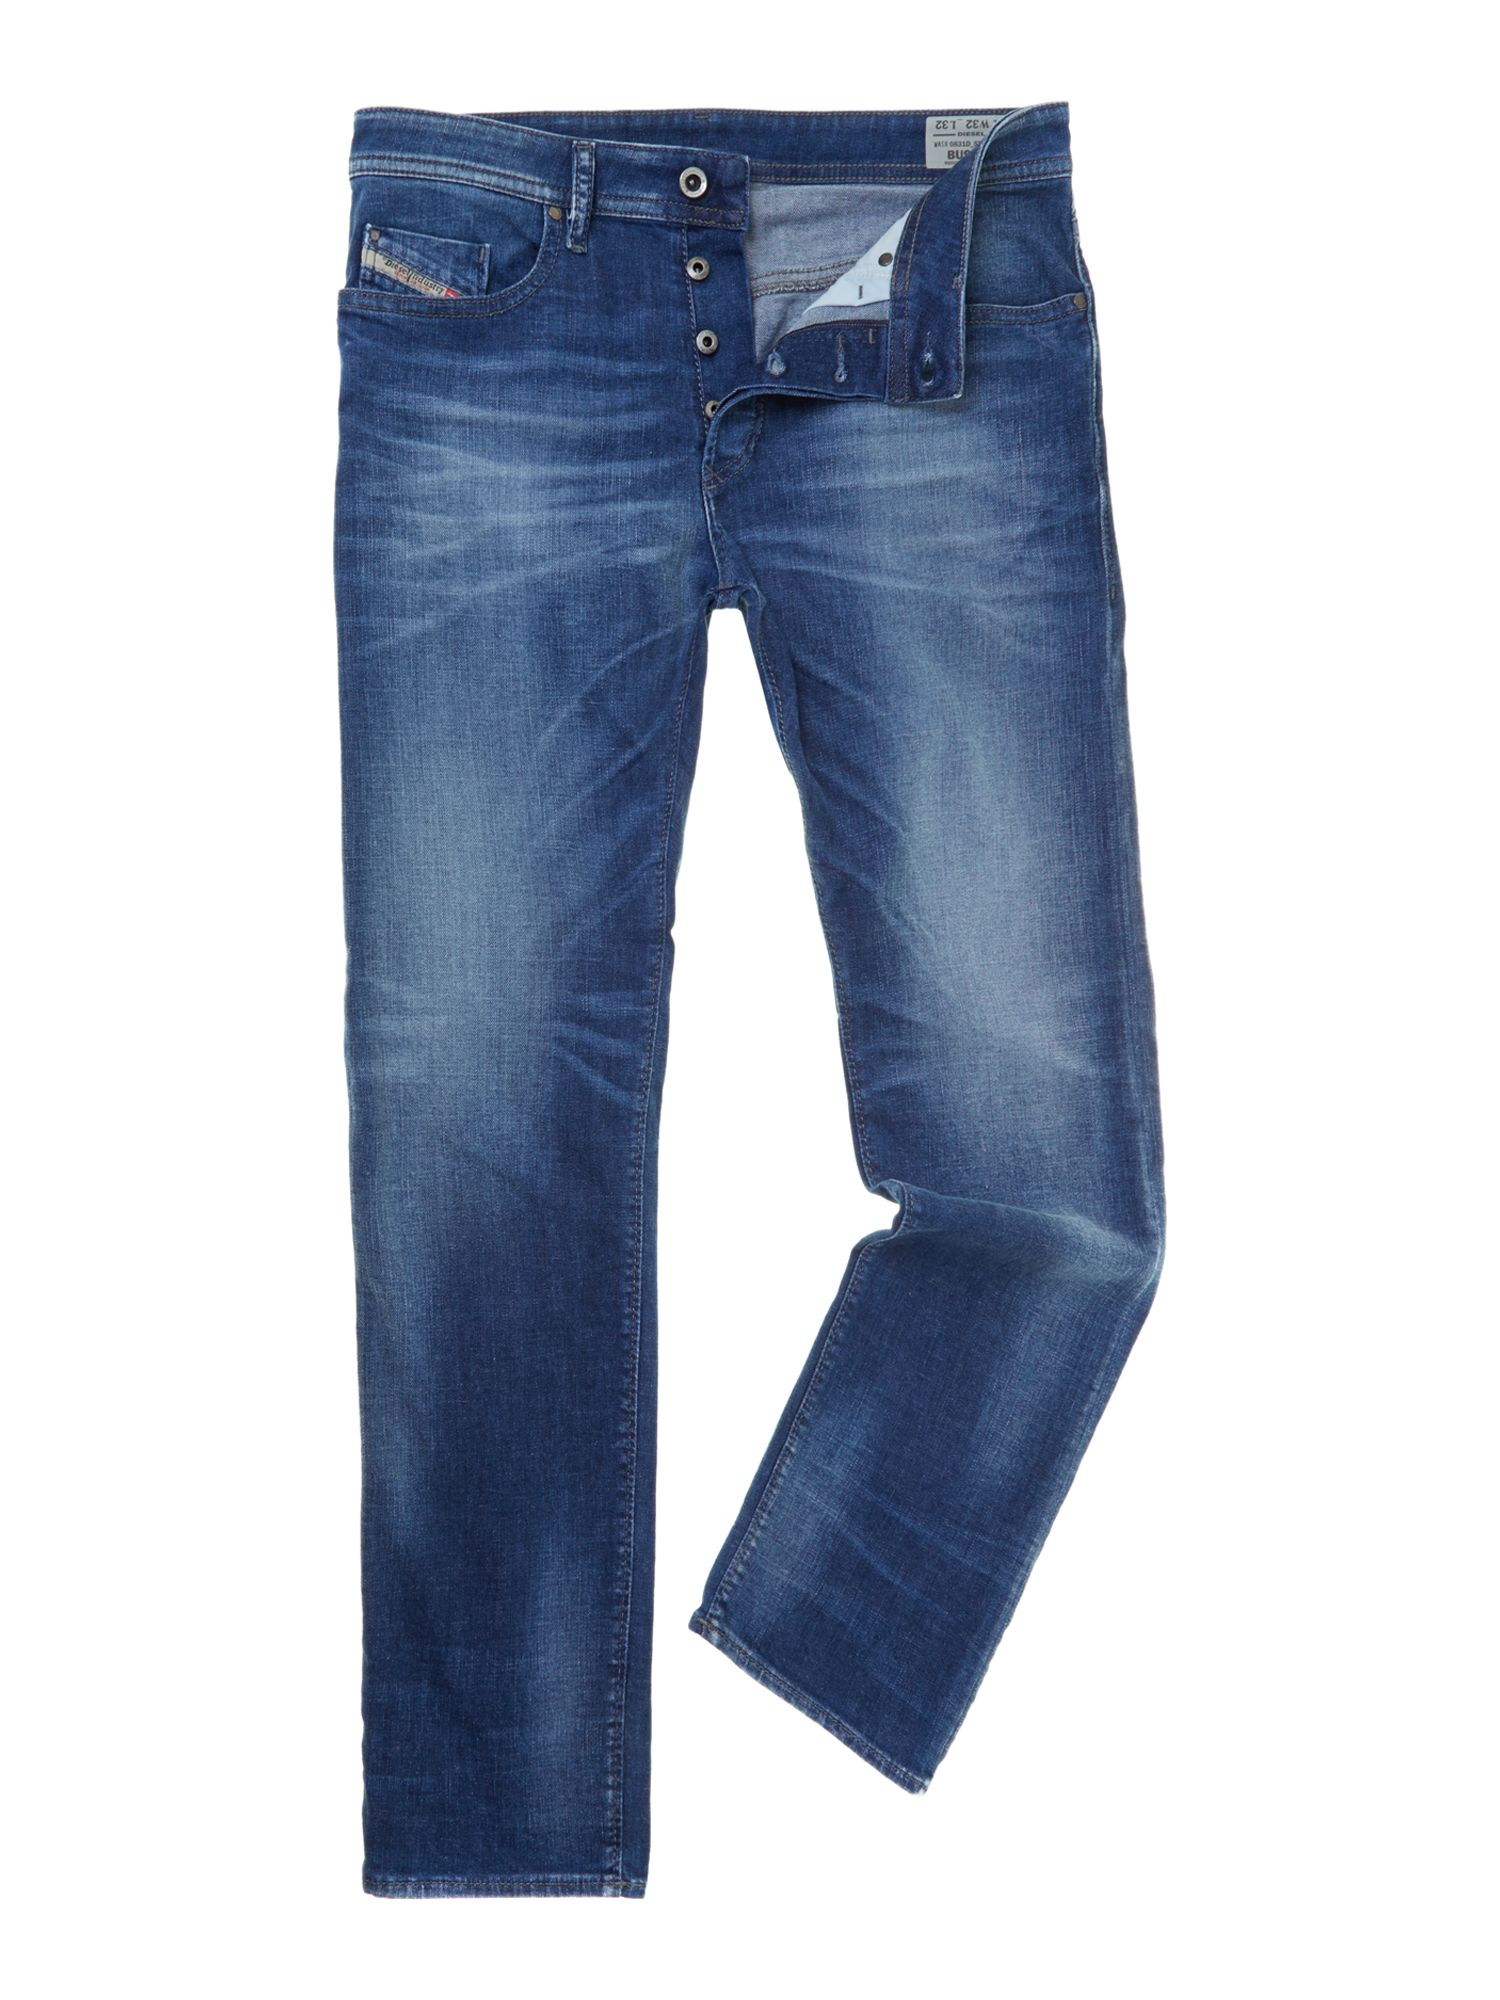 Buster 831D slim taper mid rinse jeans